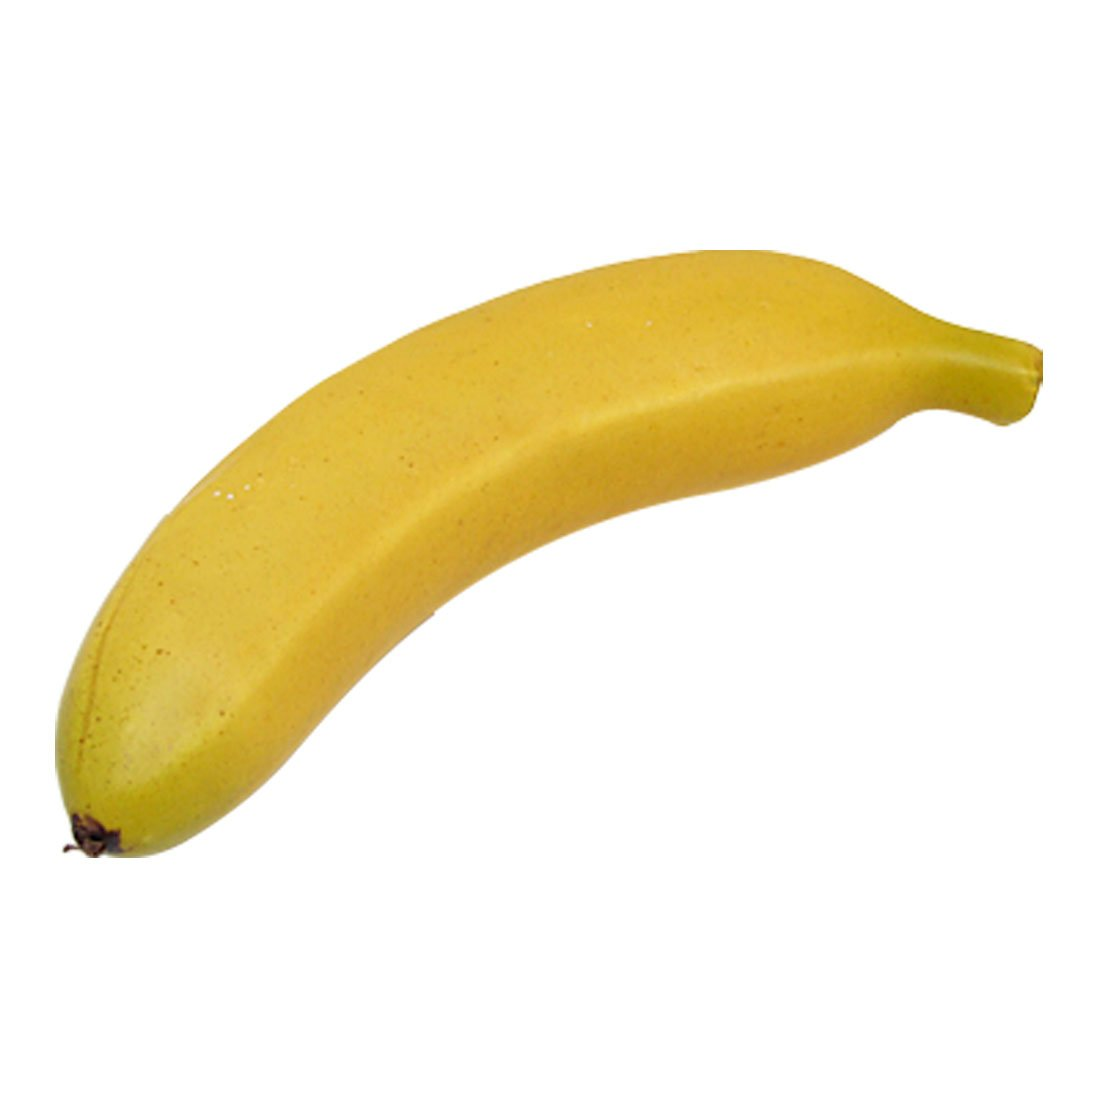 Art Craft en plastique mousse banane fruit Maison Décoration Sourcingmap SYNCELEC008306